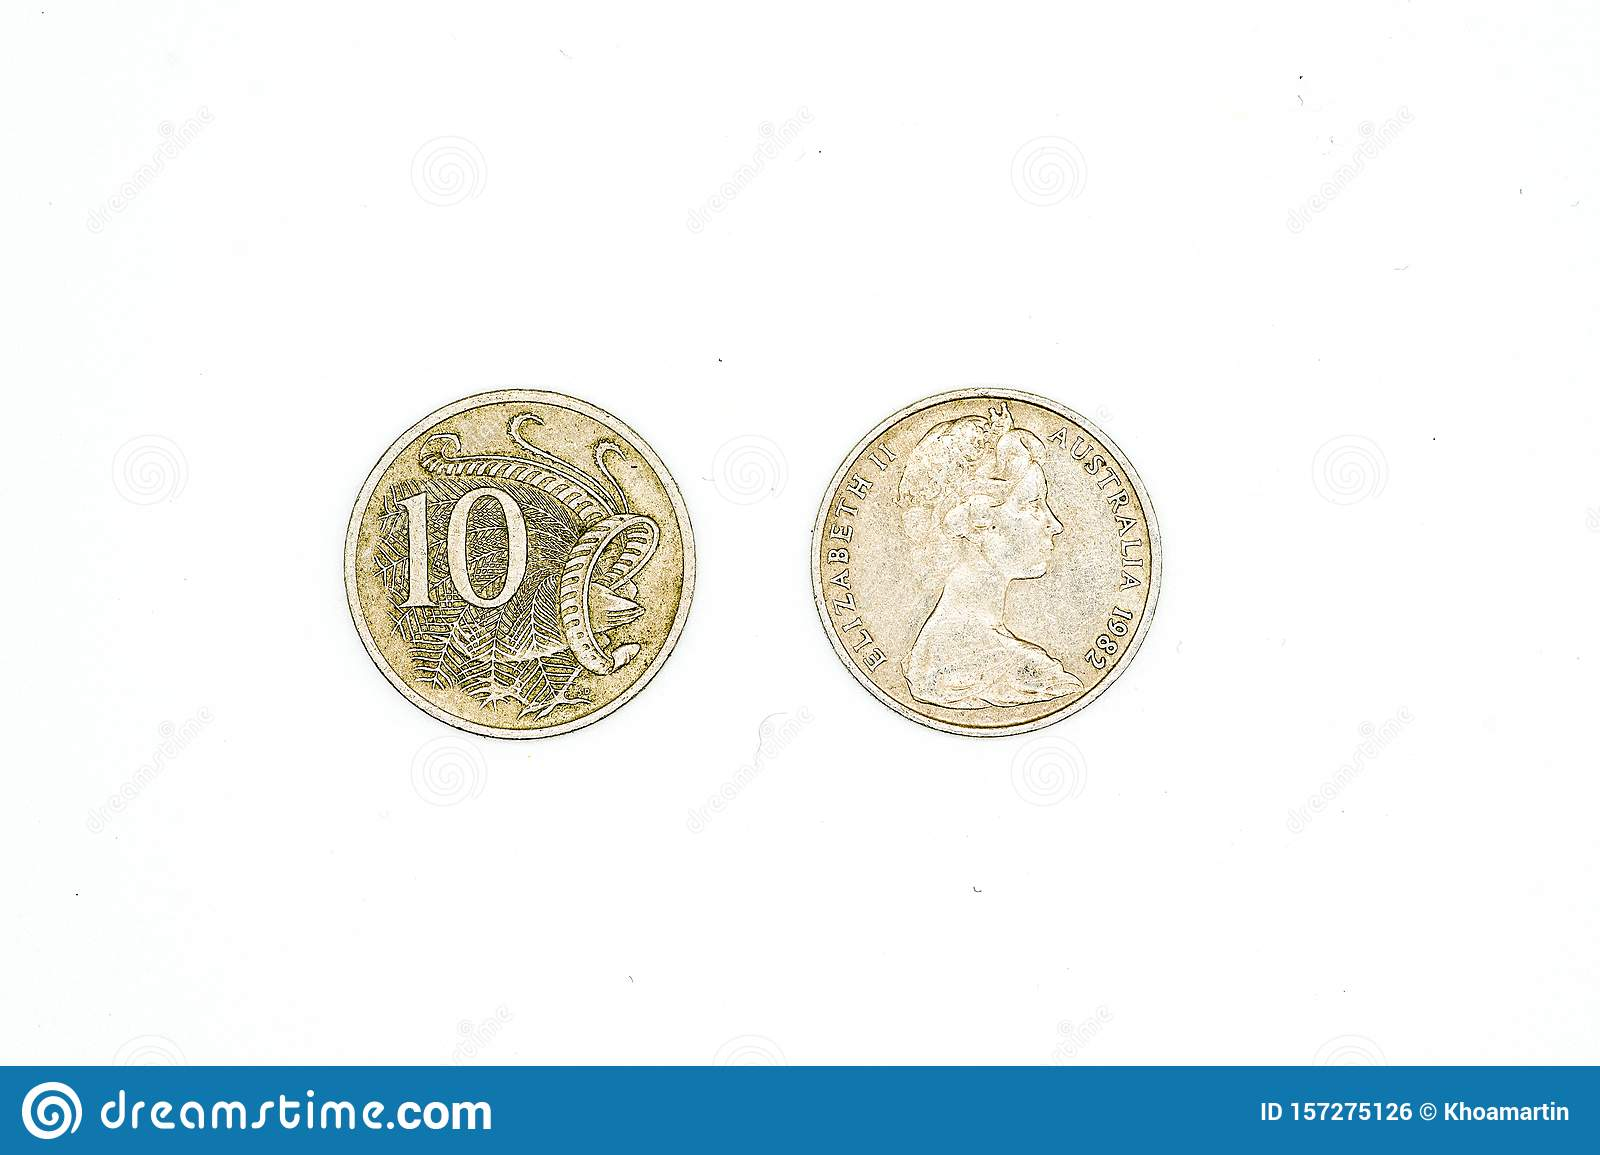 Australian dollar coins isolated on white background. 10 cent